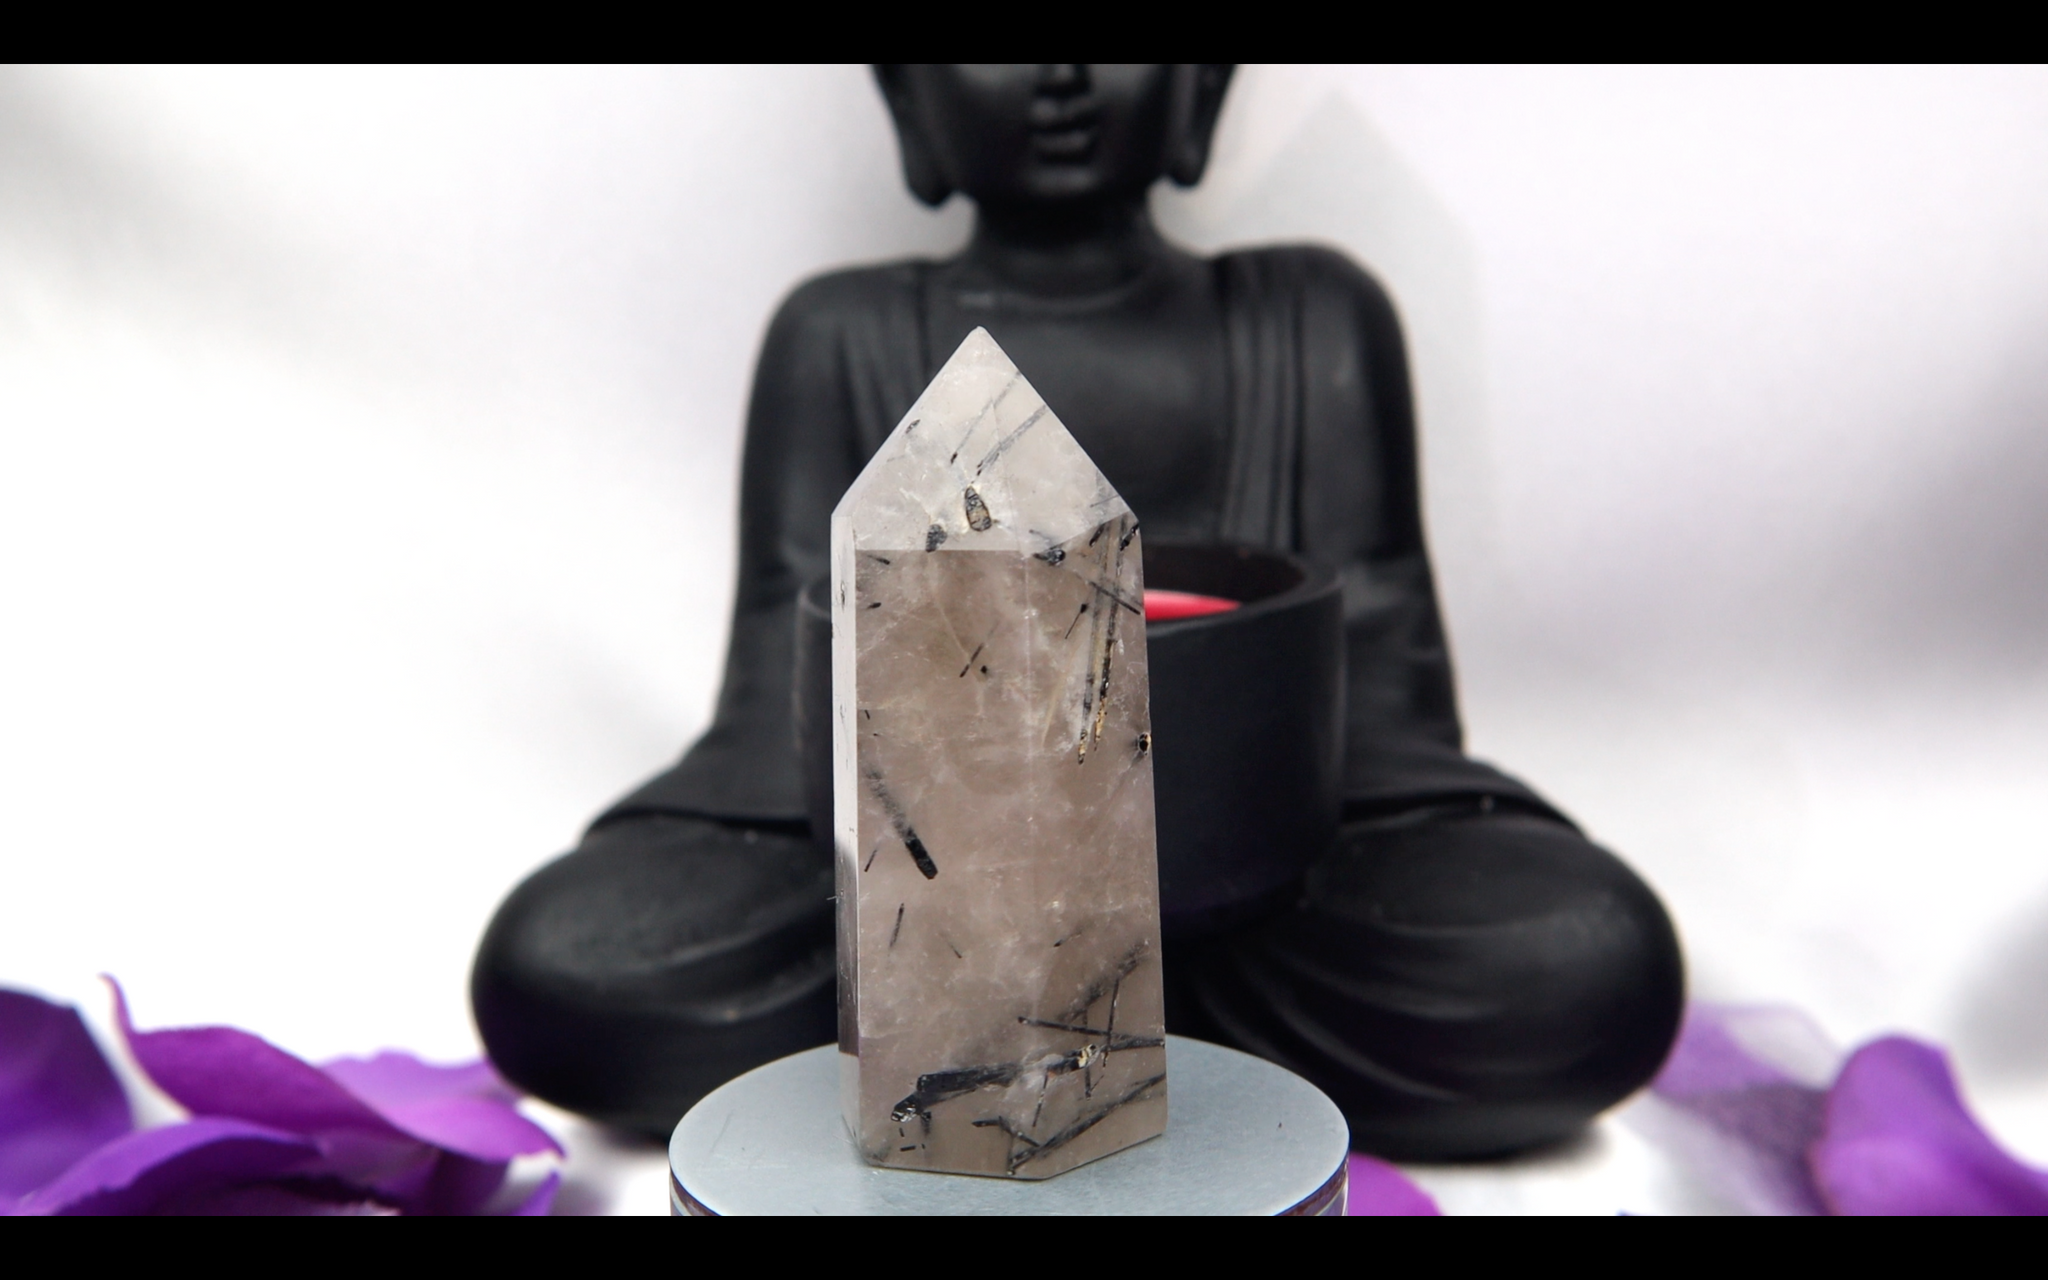 Tourmalated Quartz Tower 49.3 58.2mm x 25.4mm